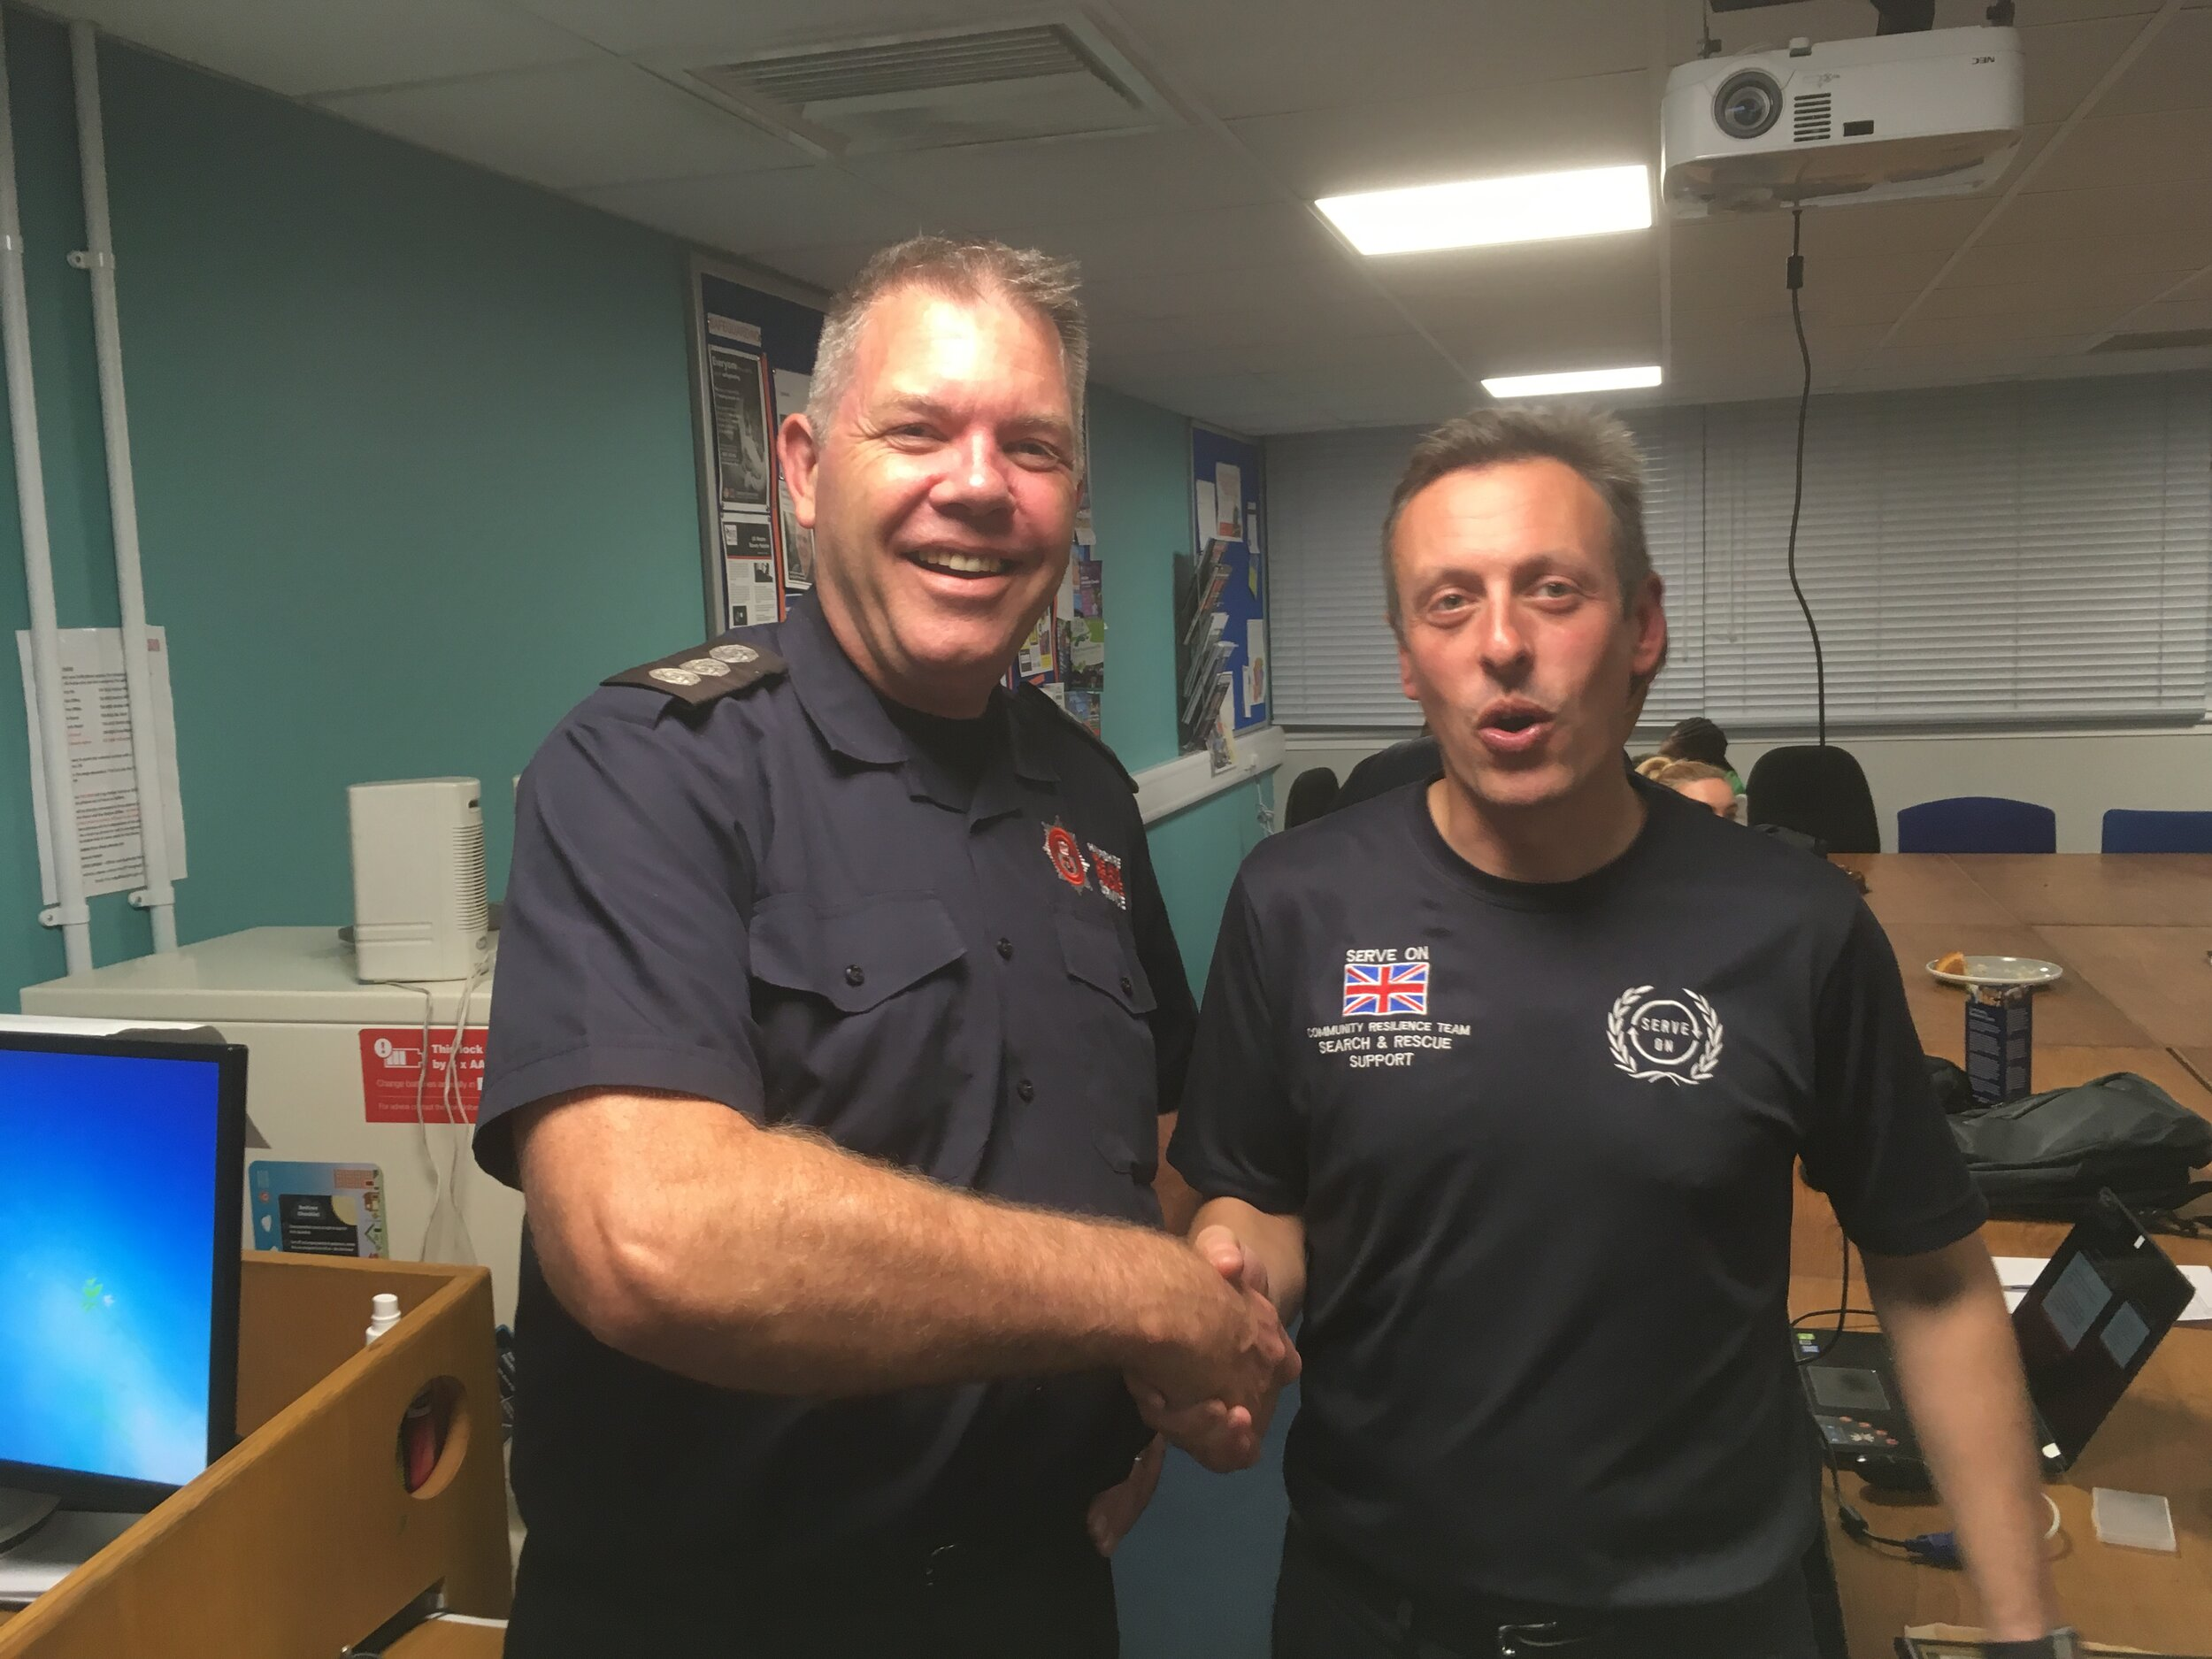 Southsea Station Commander Steve Buchanan-Lee offers his congratulations to team leader Paul on the official launch of the new Portsmouth Community Resilience Team, serving Portsmouth and the surrounding area.